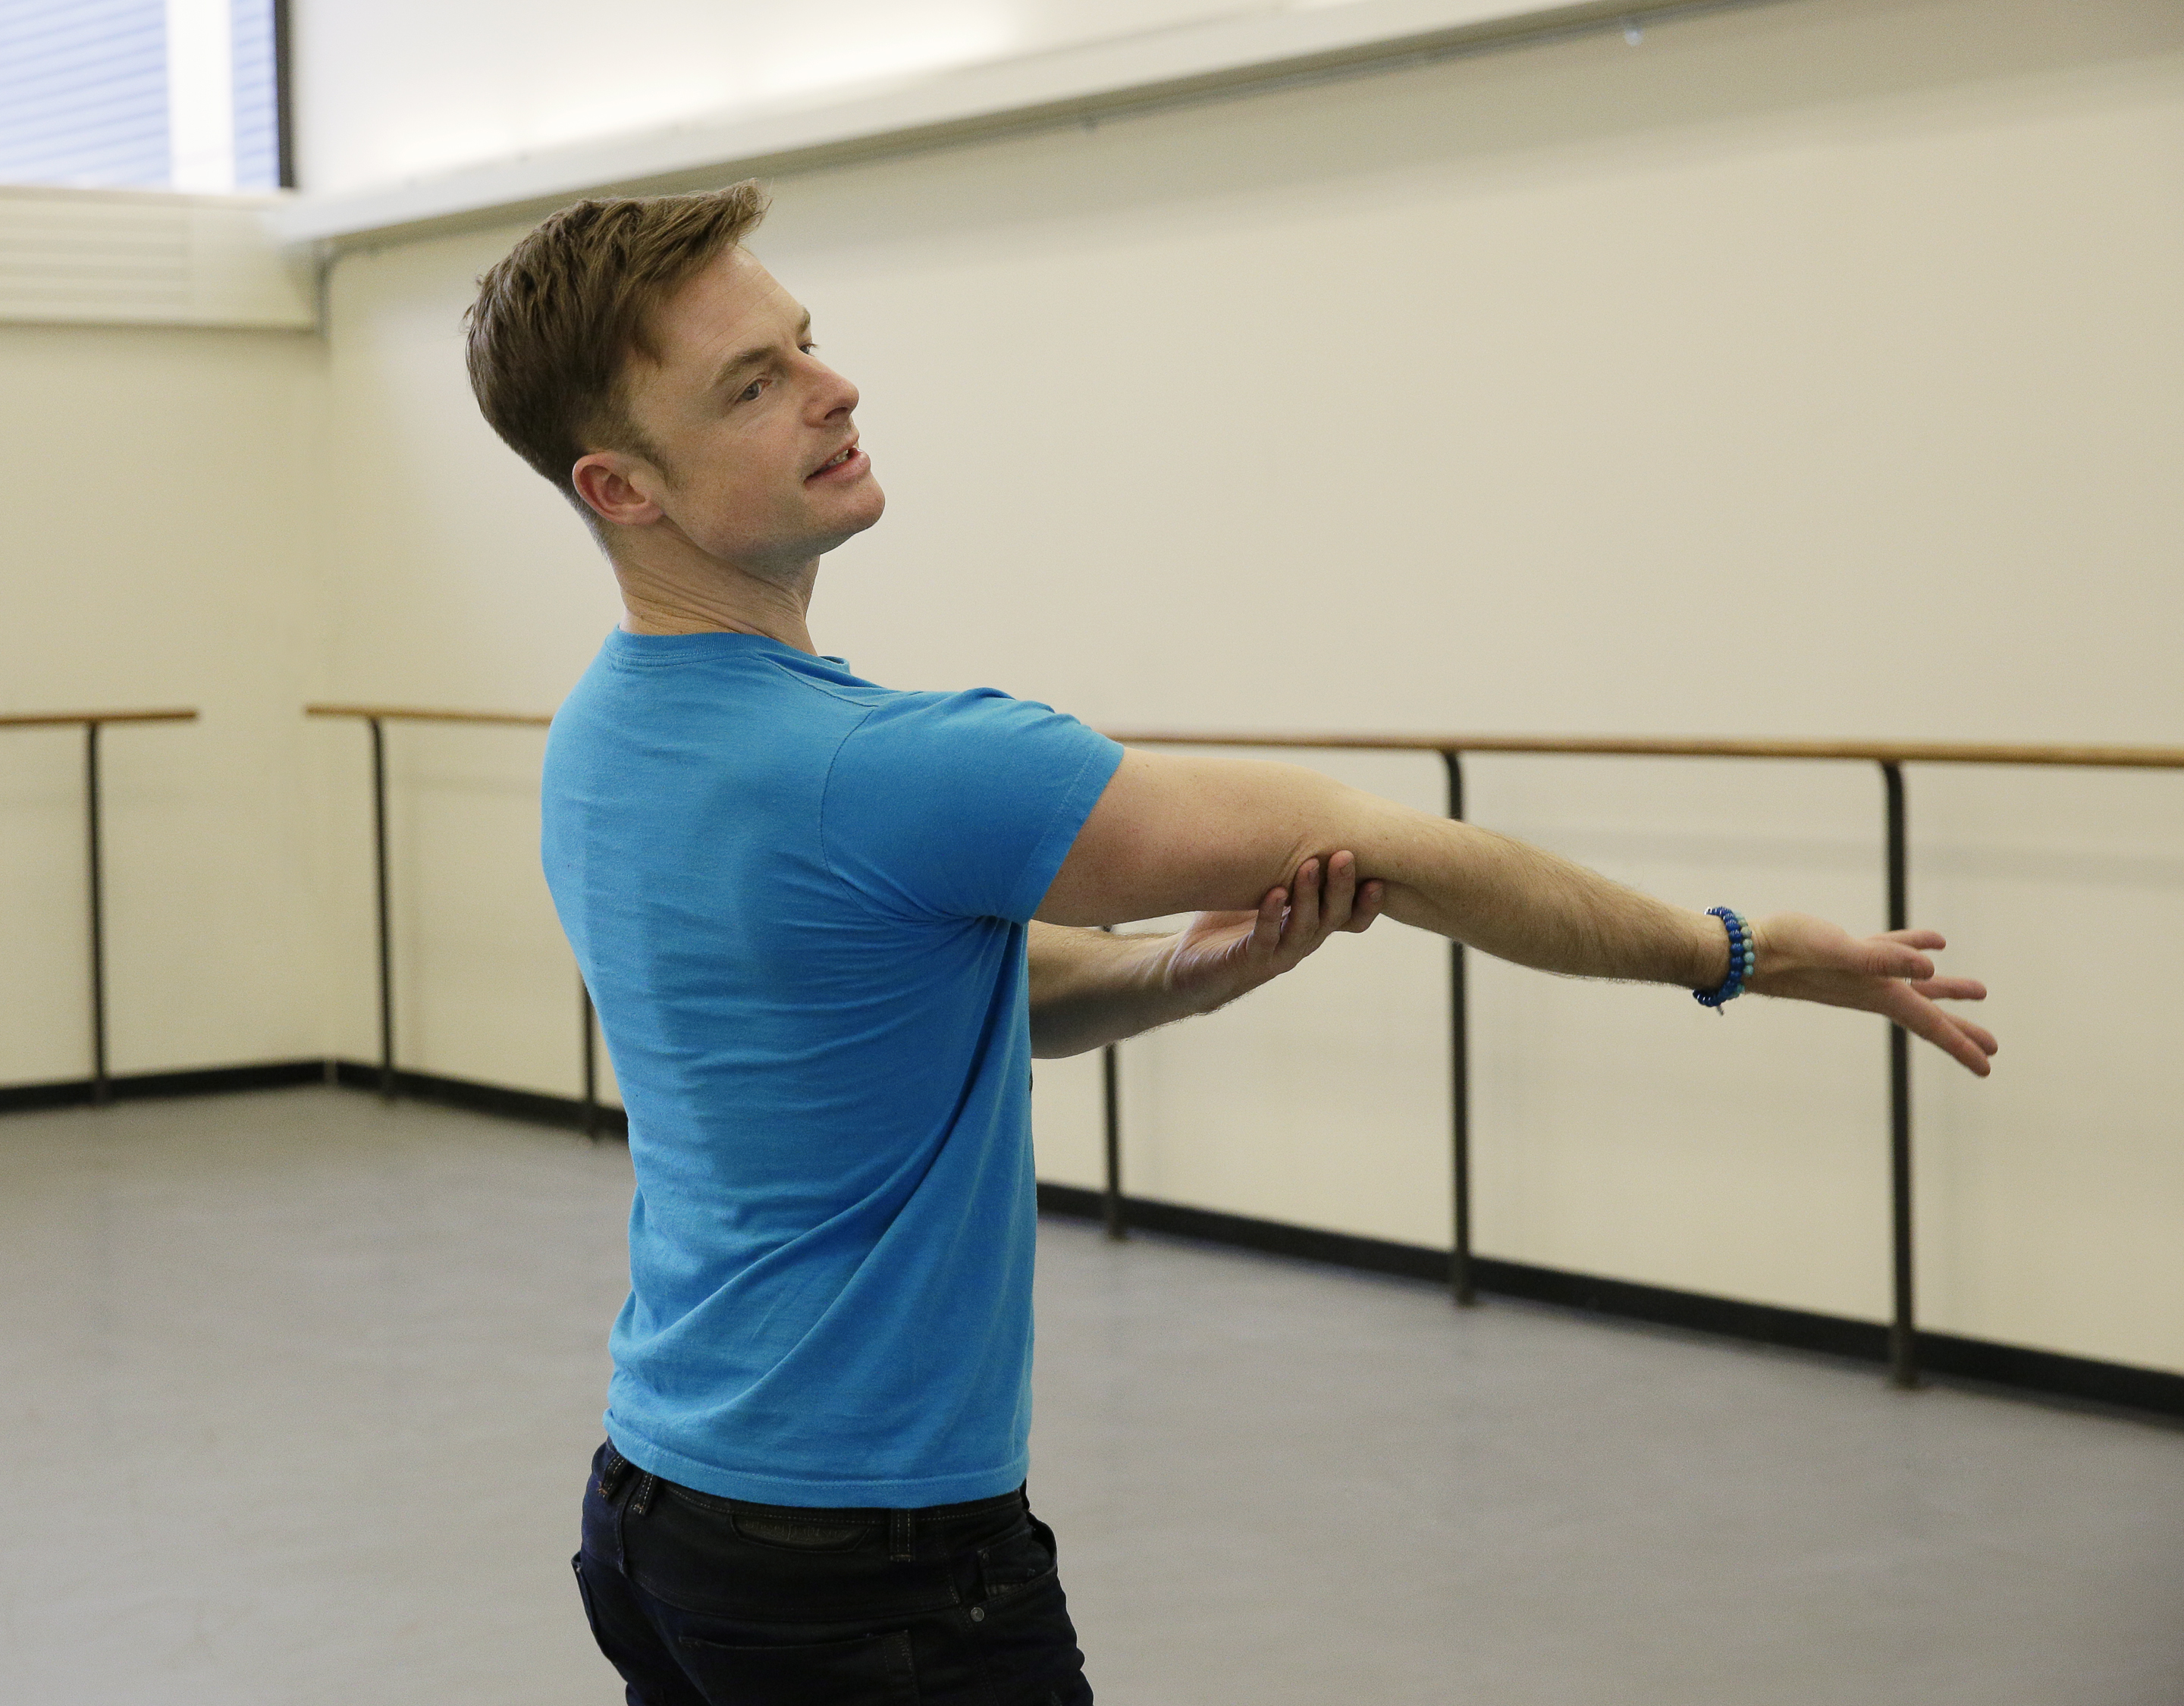 Christopher Wheeldon, san francisco ballet, an american in paris, choreographer, new york city ballet, the royal ballet, bolshoi ballet, miami city ballet, polyphonia, tony award, tony award for best choreography, rebecca king ferraro, michael sean breeden, conversations on dance, the conversations on dance podcast, dance podcast, ballet podcast, chris wheeldon, broadway, broadway and ballet,